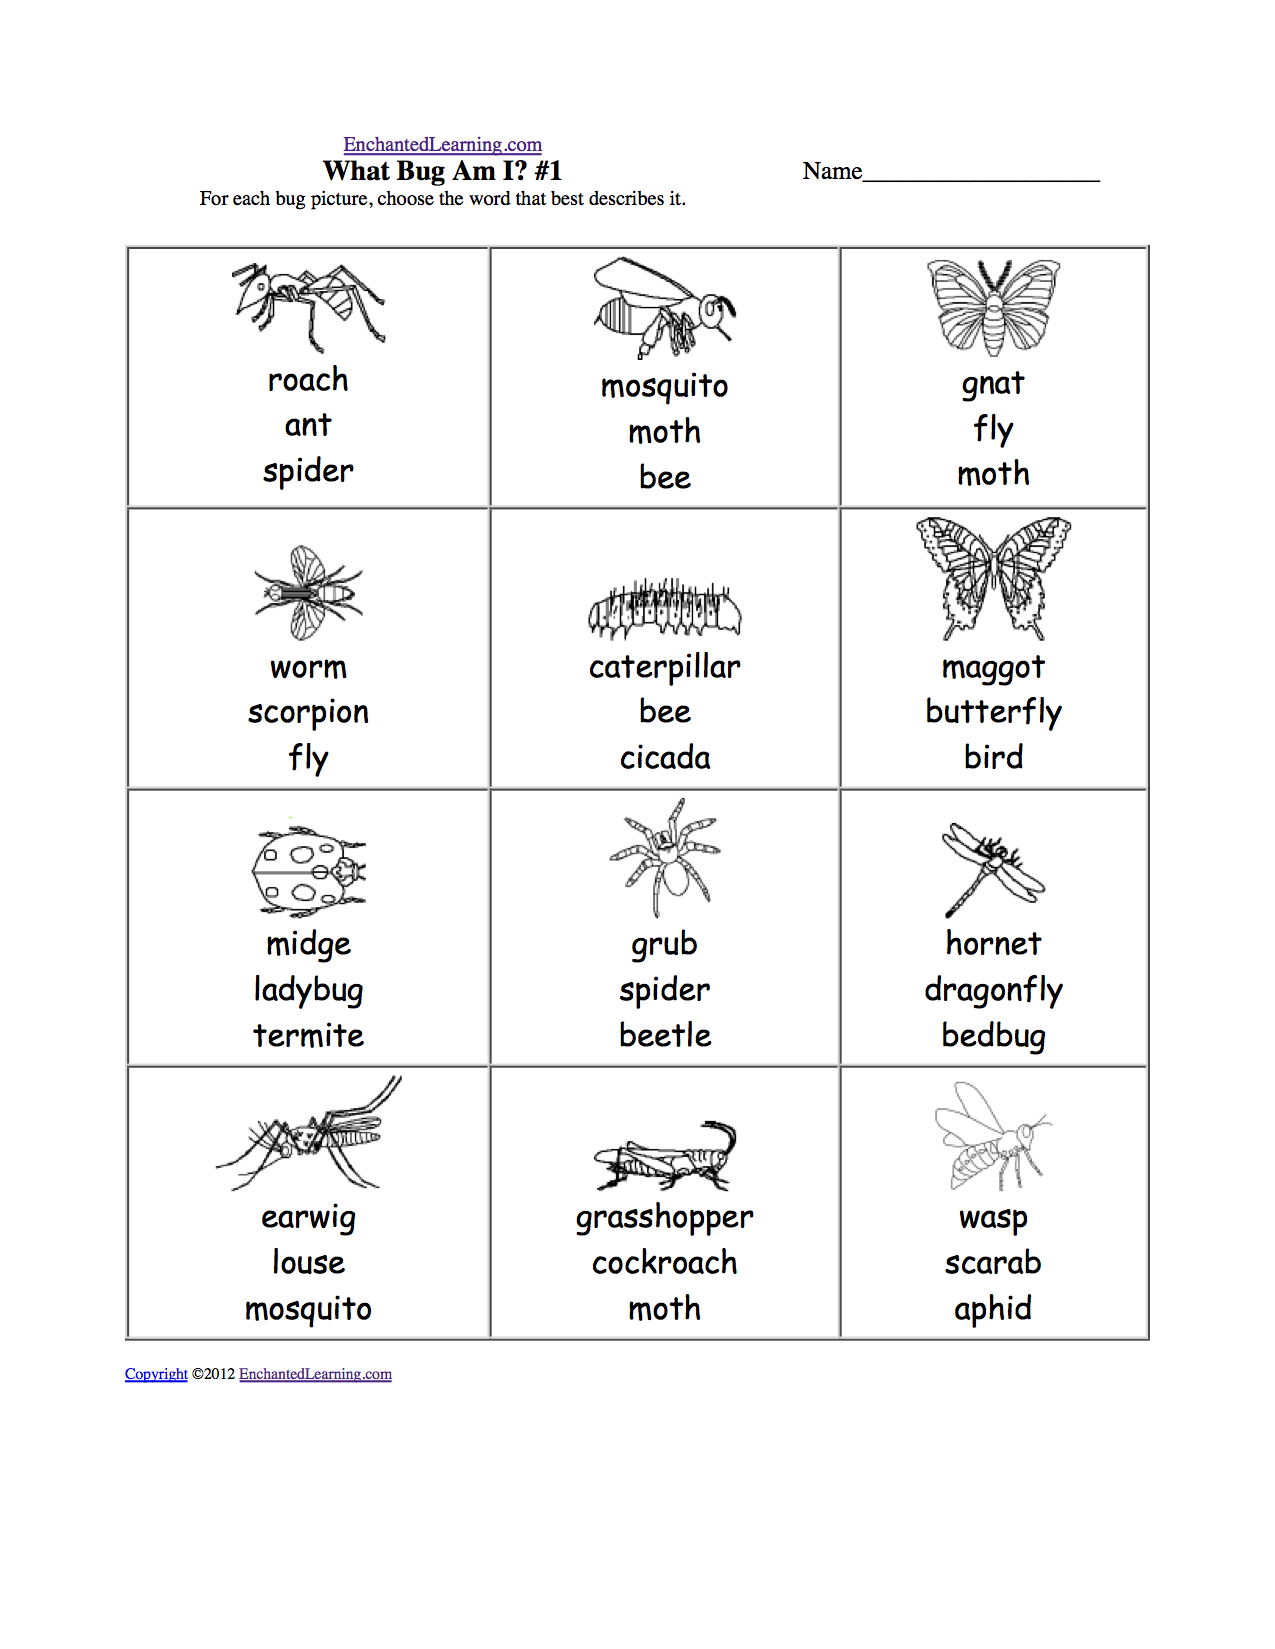 Aldiablosus  Pleasant What Am I Worksheet Printouts  Enchantedlearningcom With Likable Fraction Of A Set Worksheets Besides Fitt Worksheet Furthermore Excel  Compare Worksheets With Cute Grid Multiplication Worksheet Also Diphthongs Oi Oy Worksheets In Addition Make Your Own Cursive Writing Worksheets And Speech Marks Worksheets As Well As Free Key Stage  Worksheets Additionally Fraction To Percentage Worksheet From Enchantedlearningcom With Aldiablosus  Likable What Am I Worksheet Printouts  Enchantedlearningcom With Cute Fraction Of A Set Worksheets Besides Fitt Worksheet Furthermore Excel  Compare Worksheets And Pleasant Grid Multiplication Worksheet Also Diphthongs Oi Oy Worksheets In Addition Make Your Own Cursive Writing Worksheets From Enchantedlearningcom